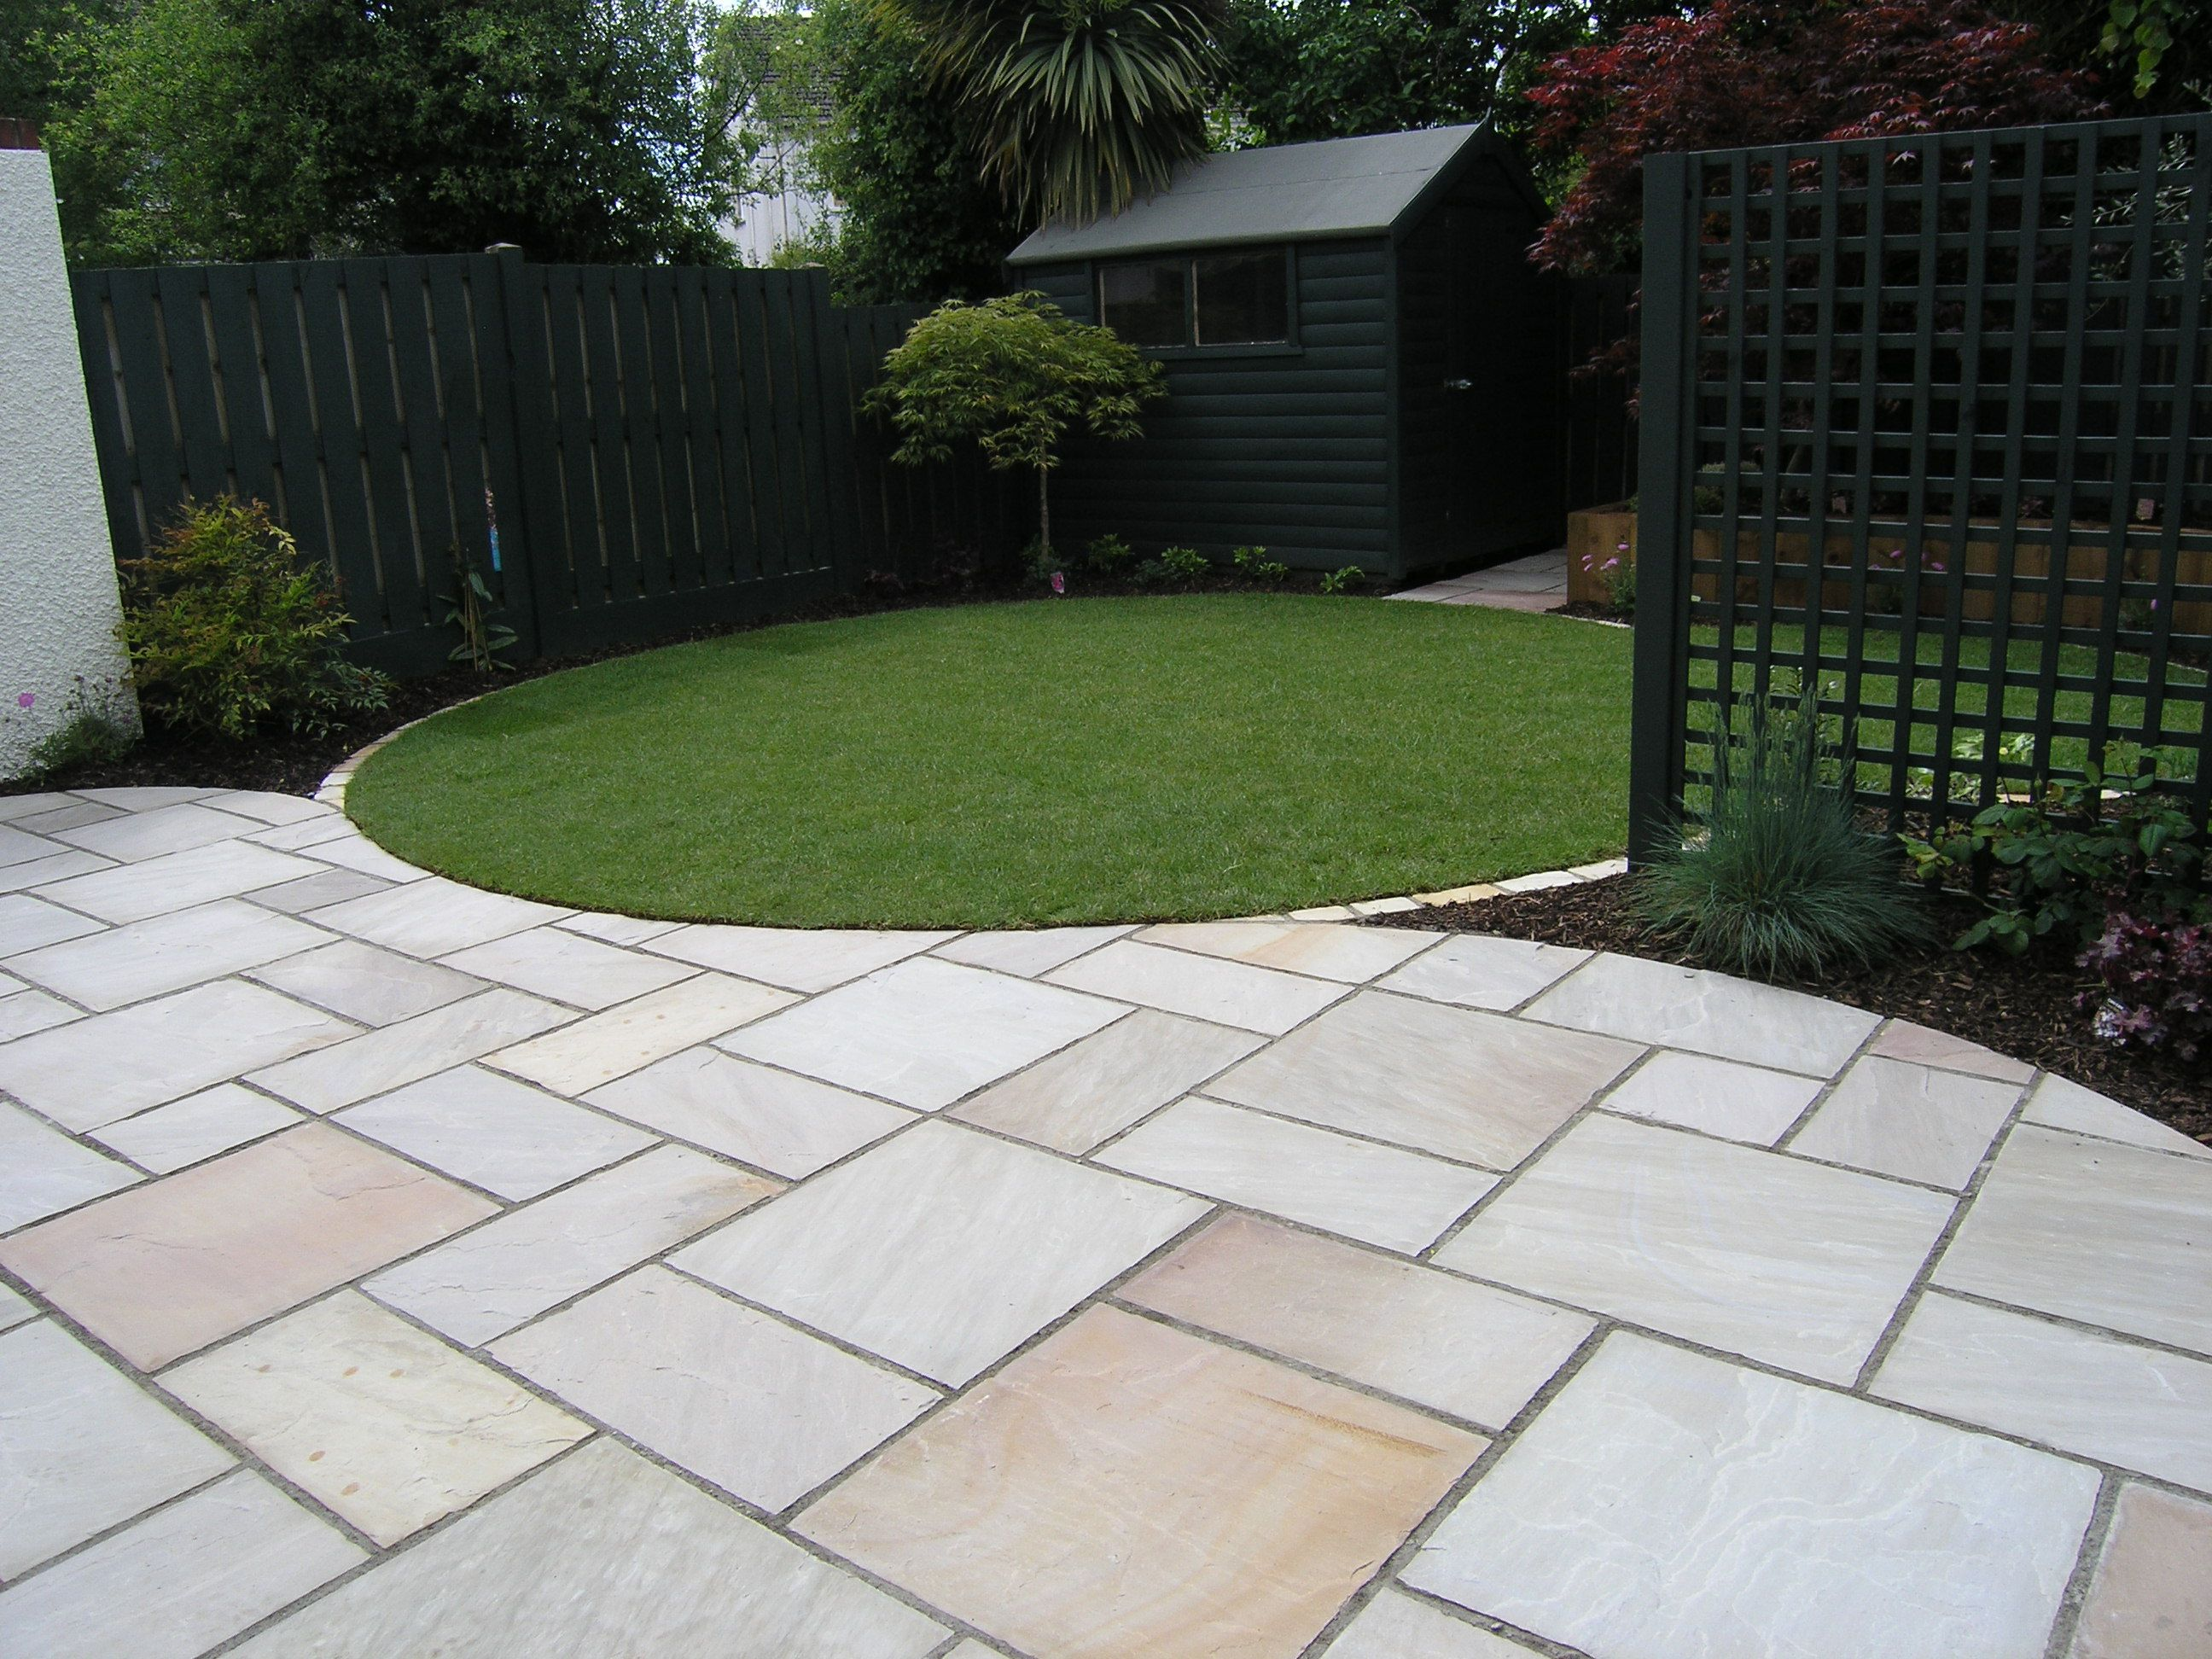 Best 25 Garden paving ideas on Pinterest Paving ideas Small